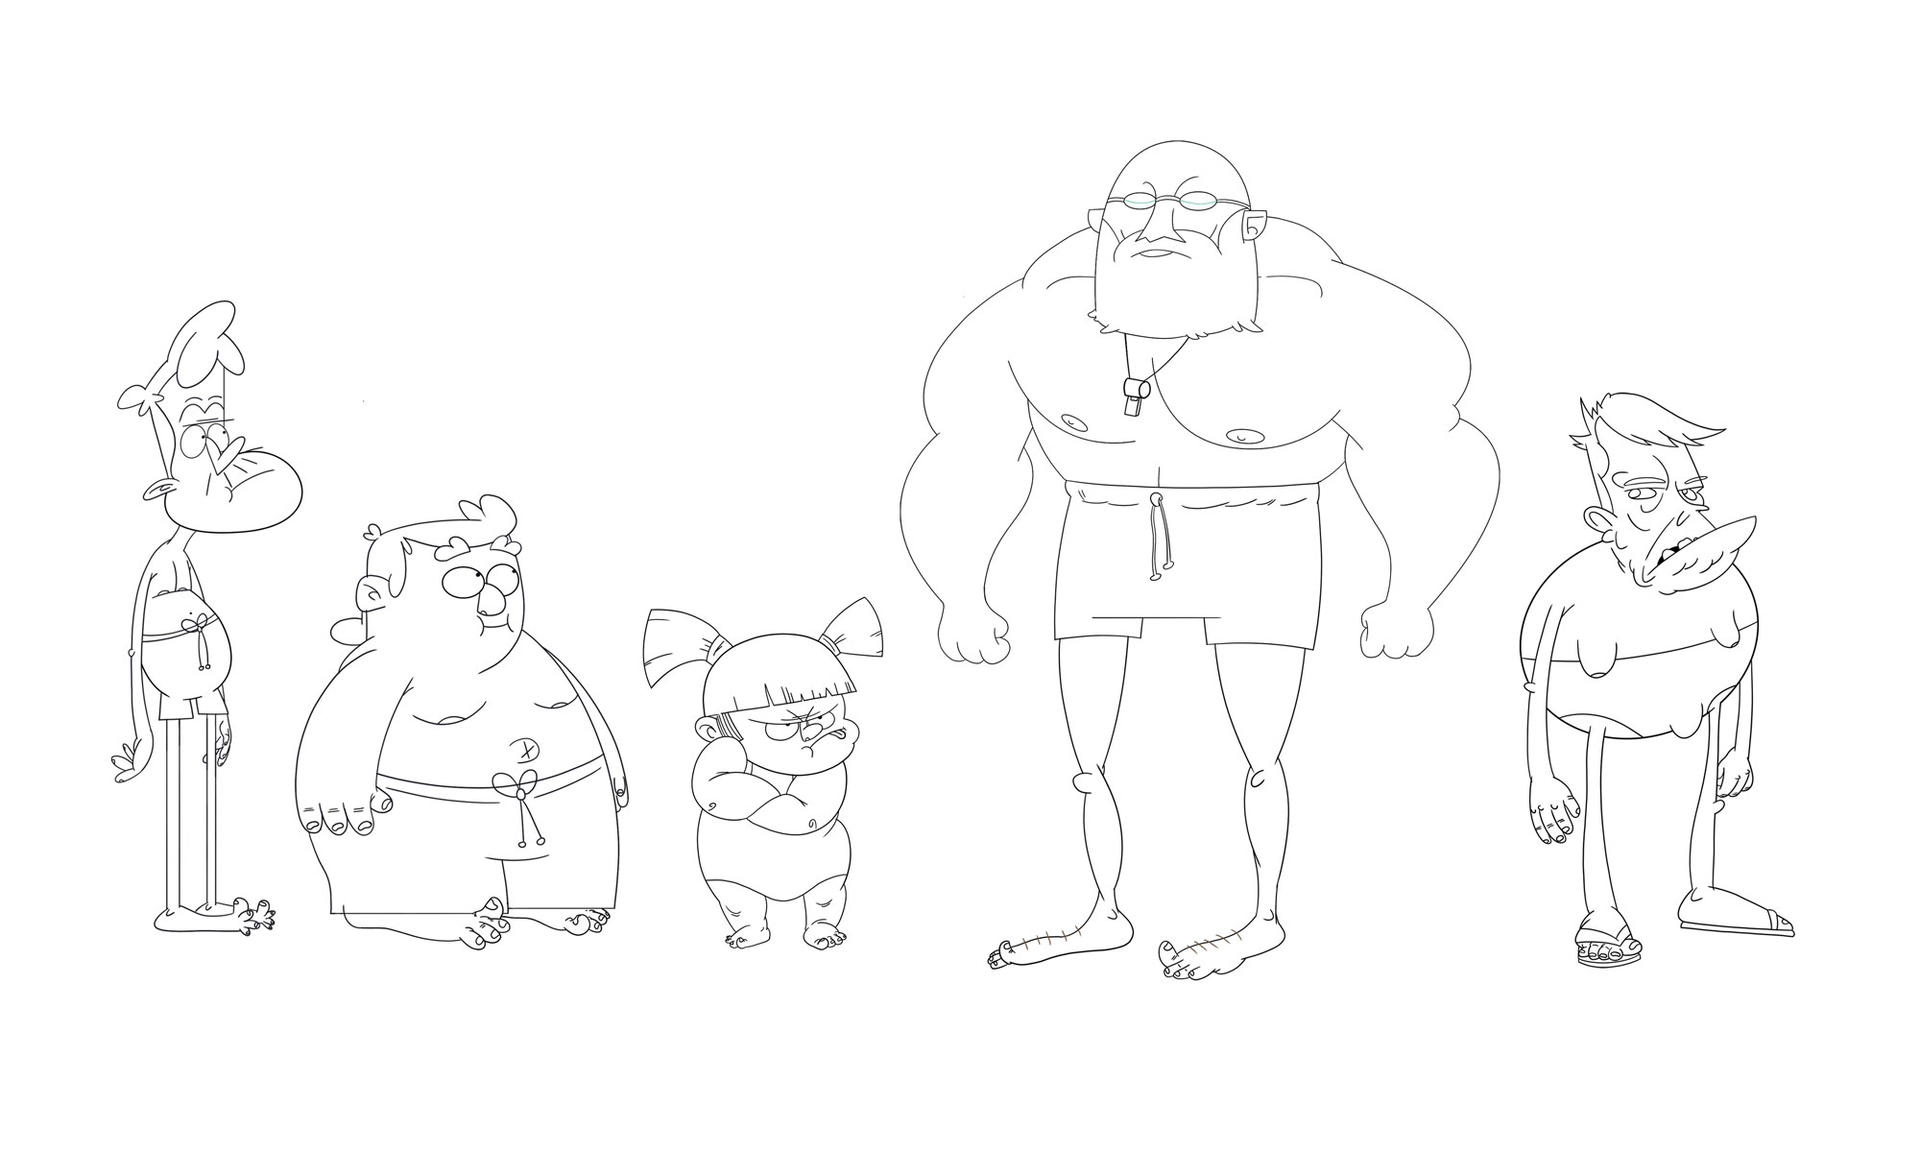 lineup of 5 original character designs